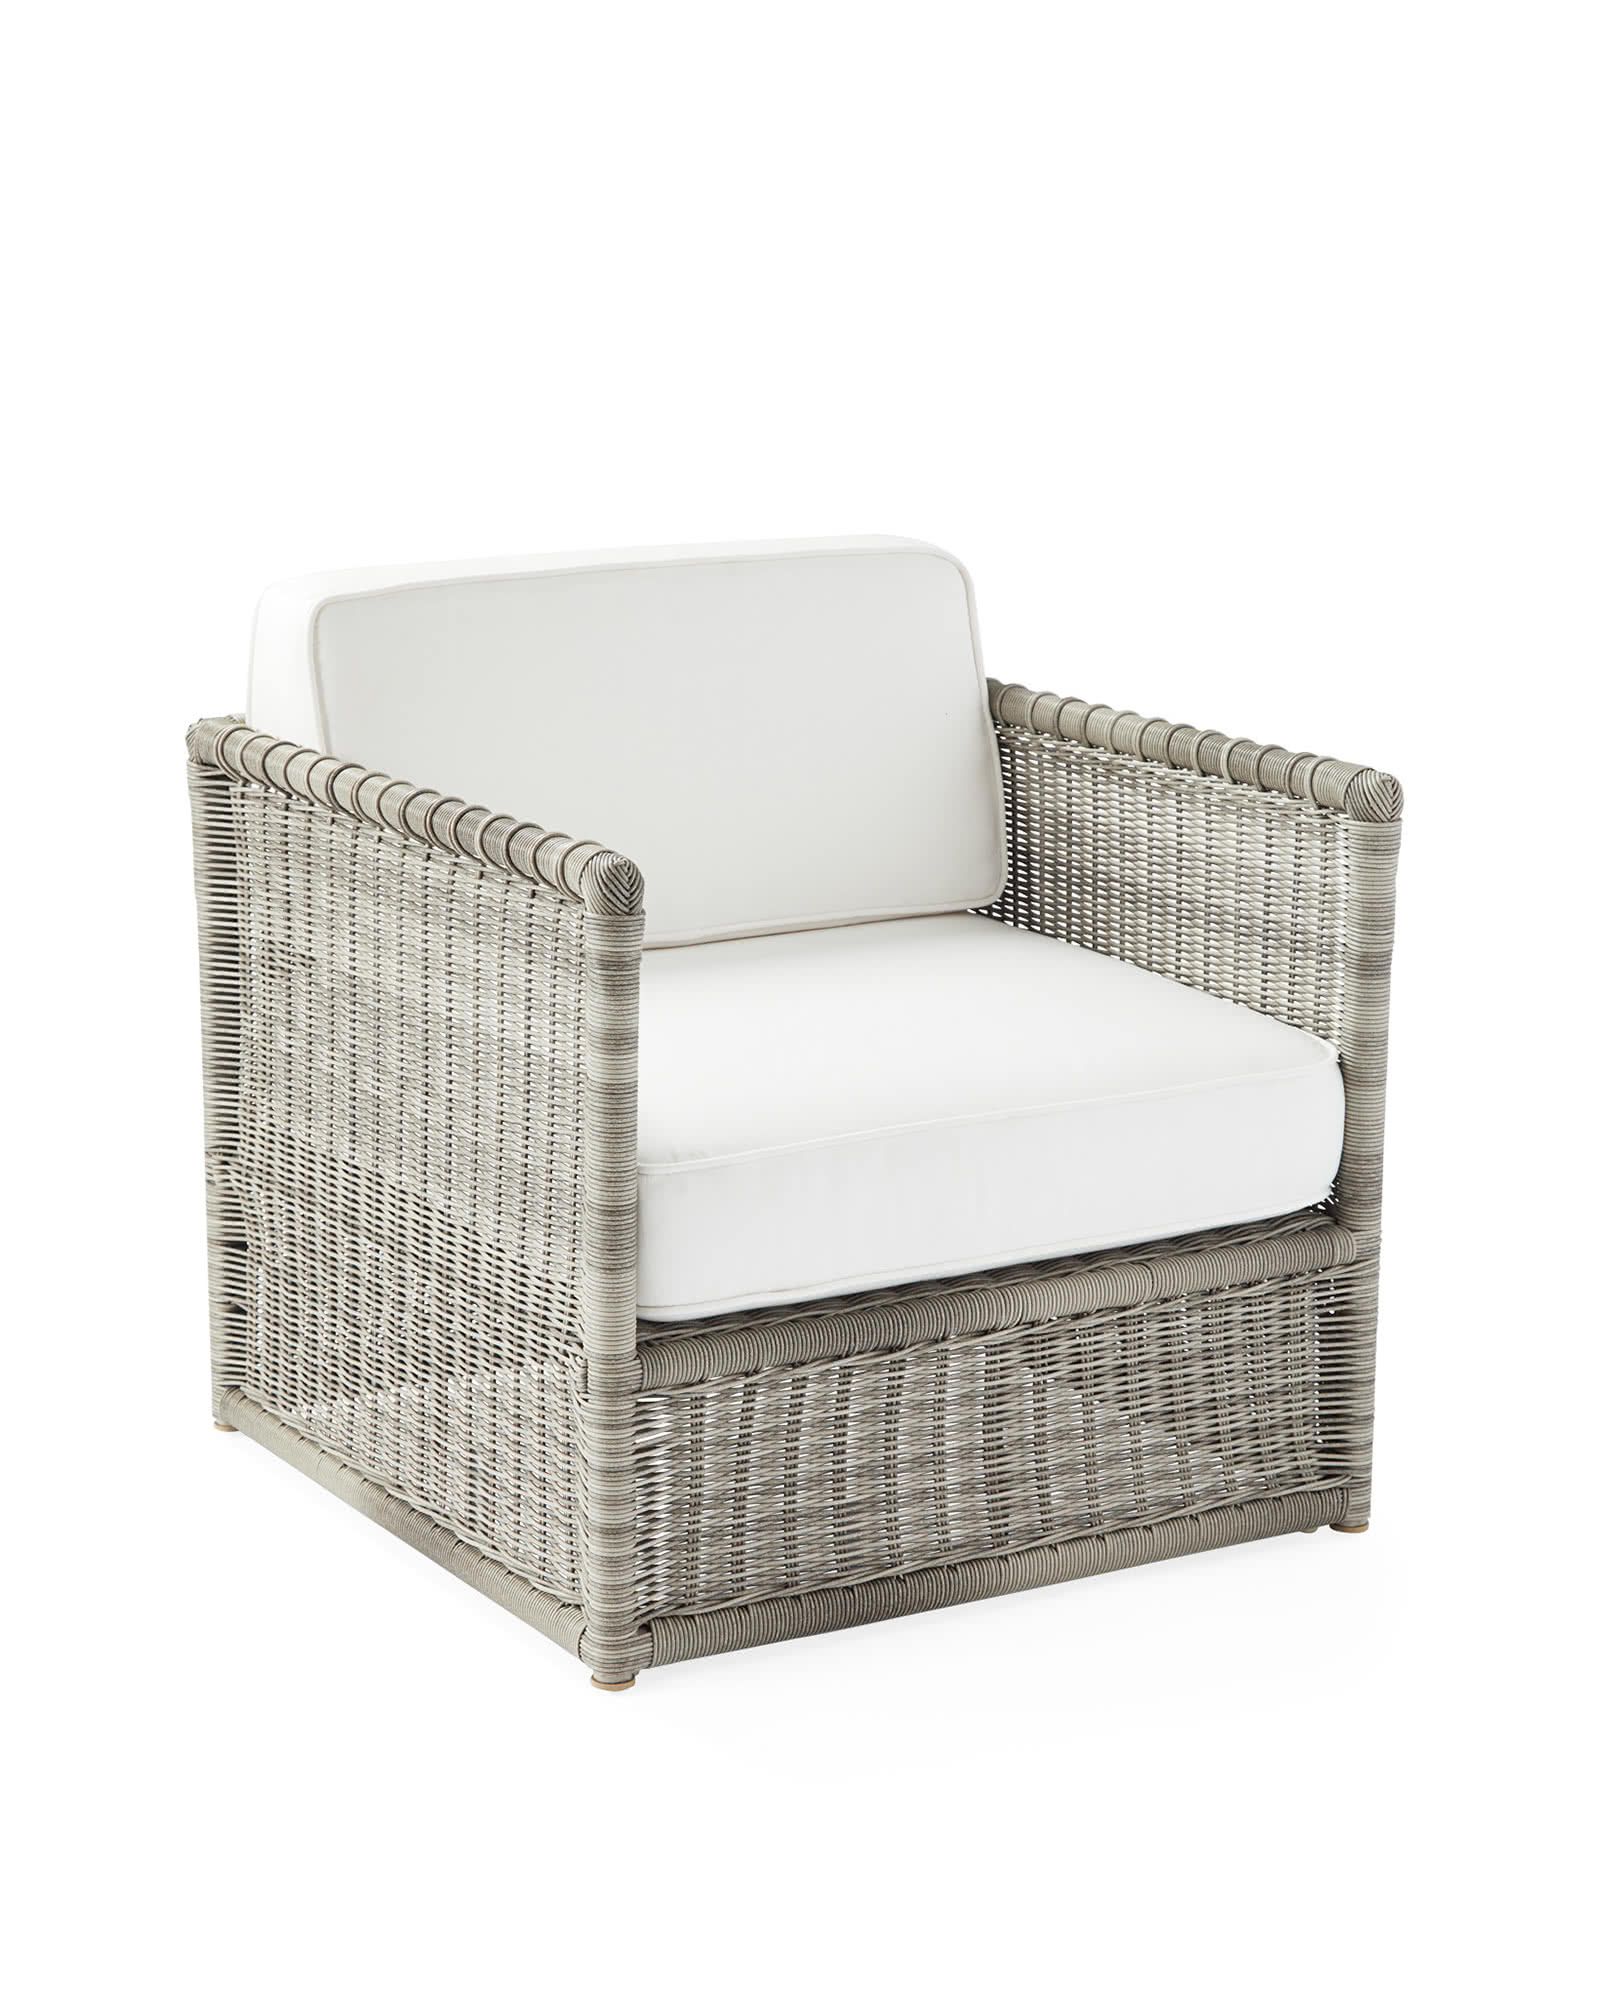 Pacifica Lounge Chair - Harbor Grey,